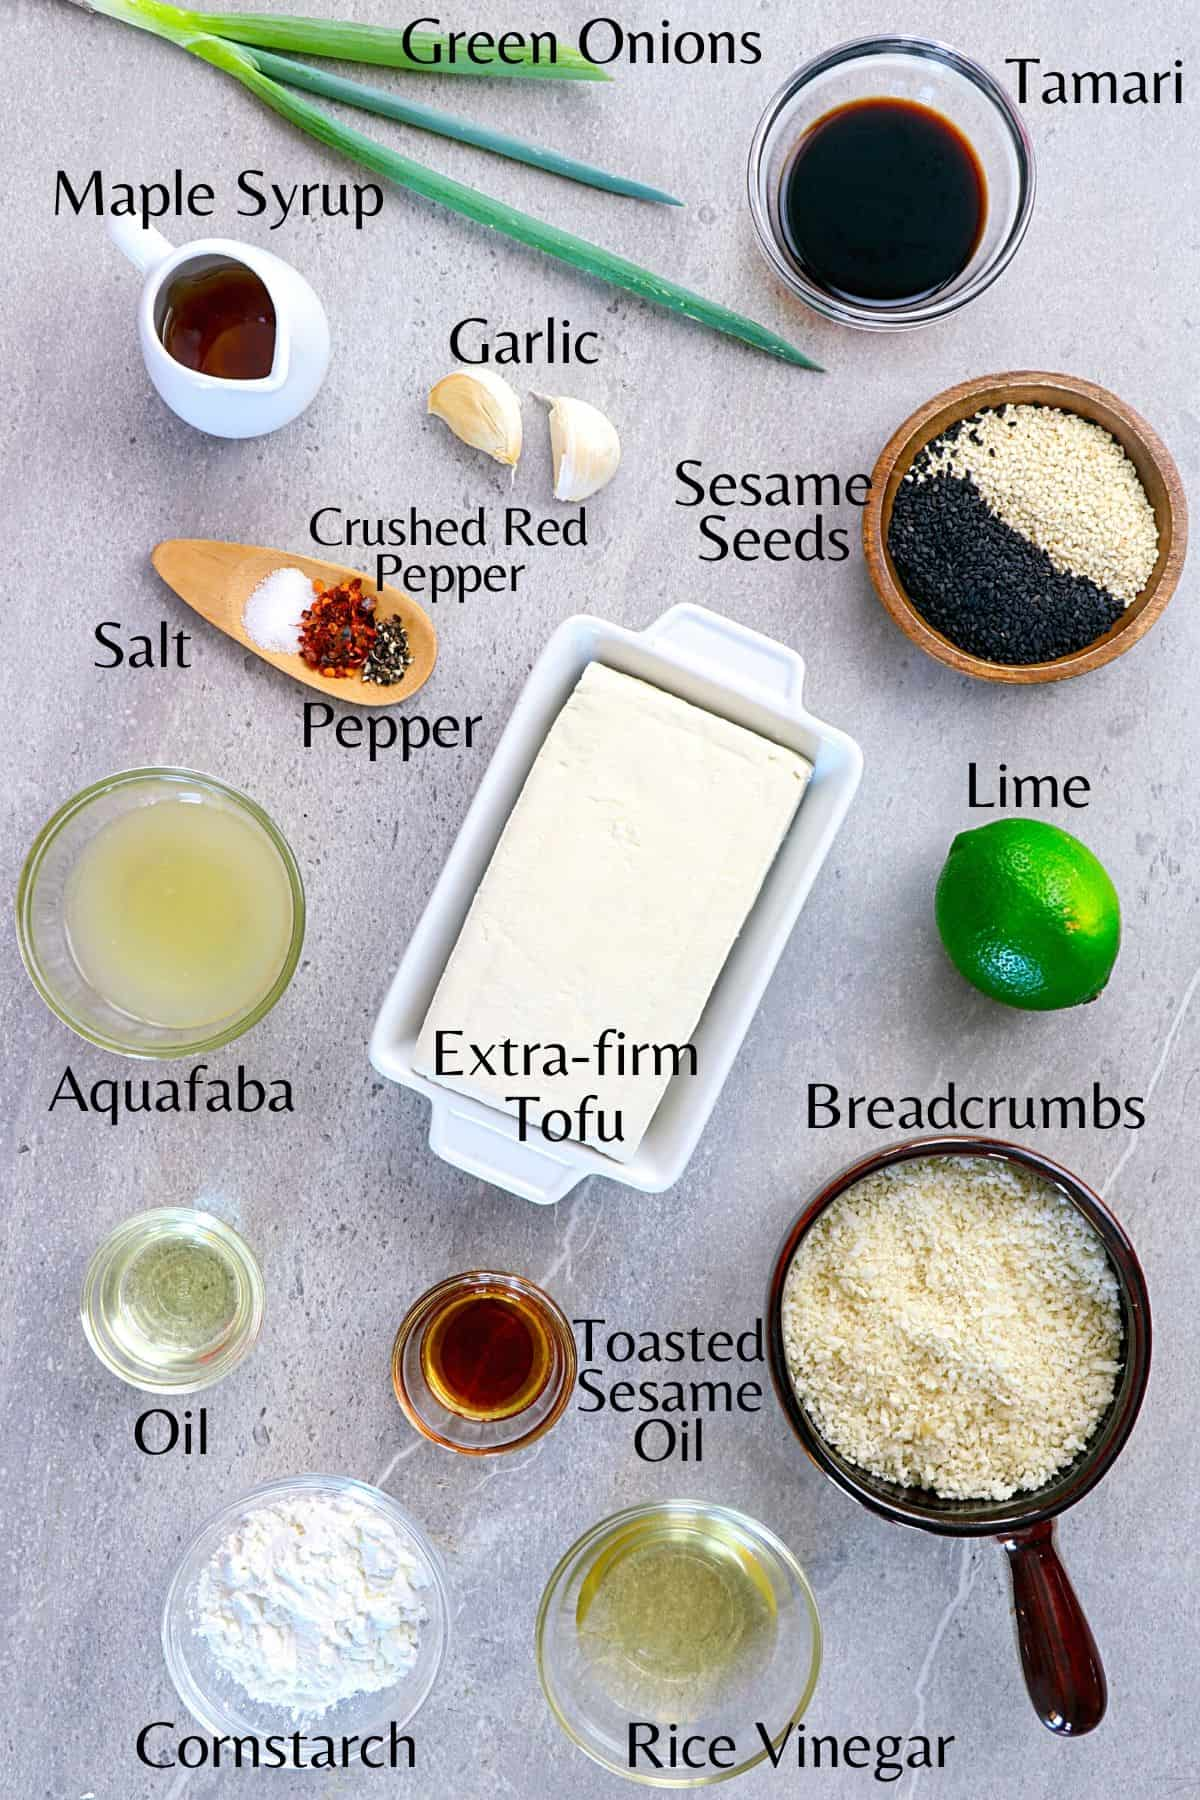 Ingredients to make the tofu and dipping sauce on a stone table top.